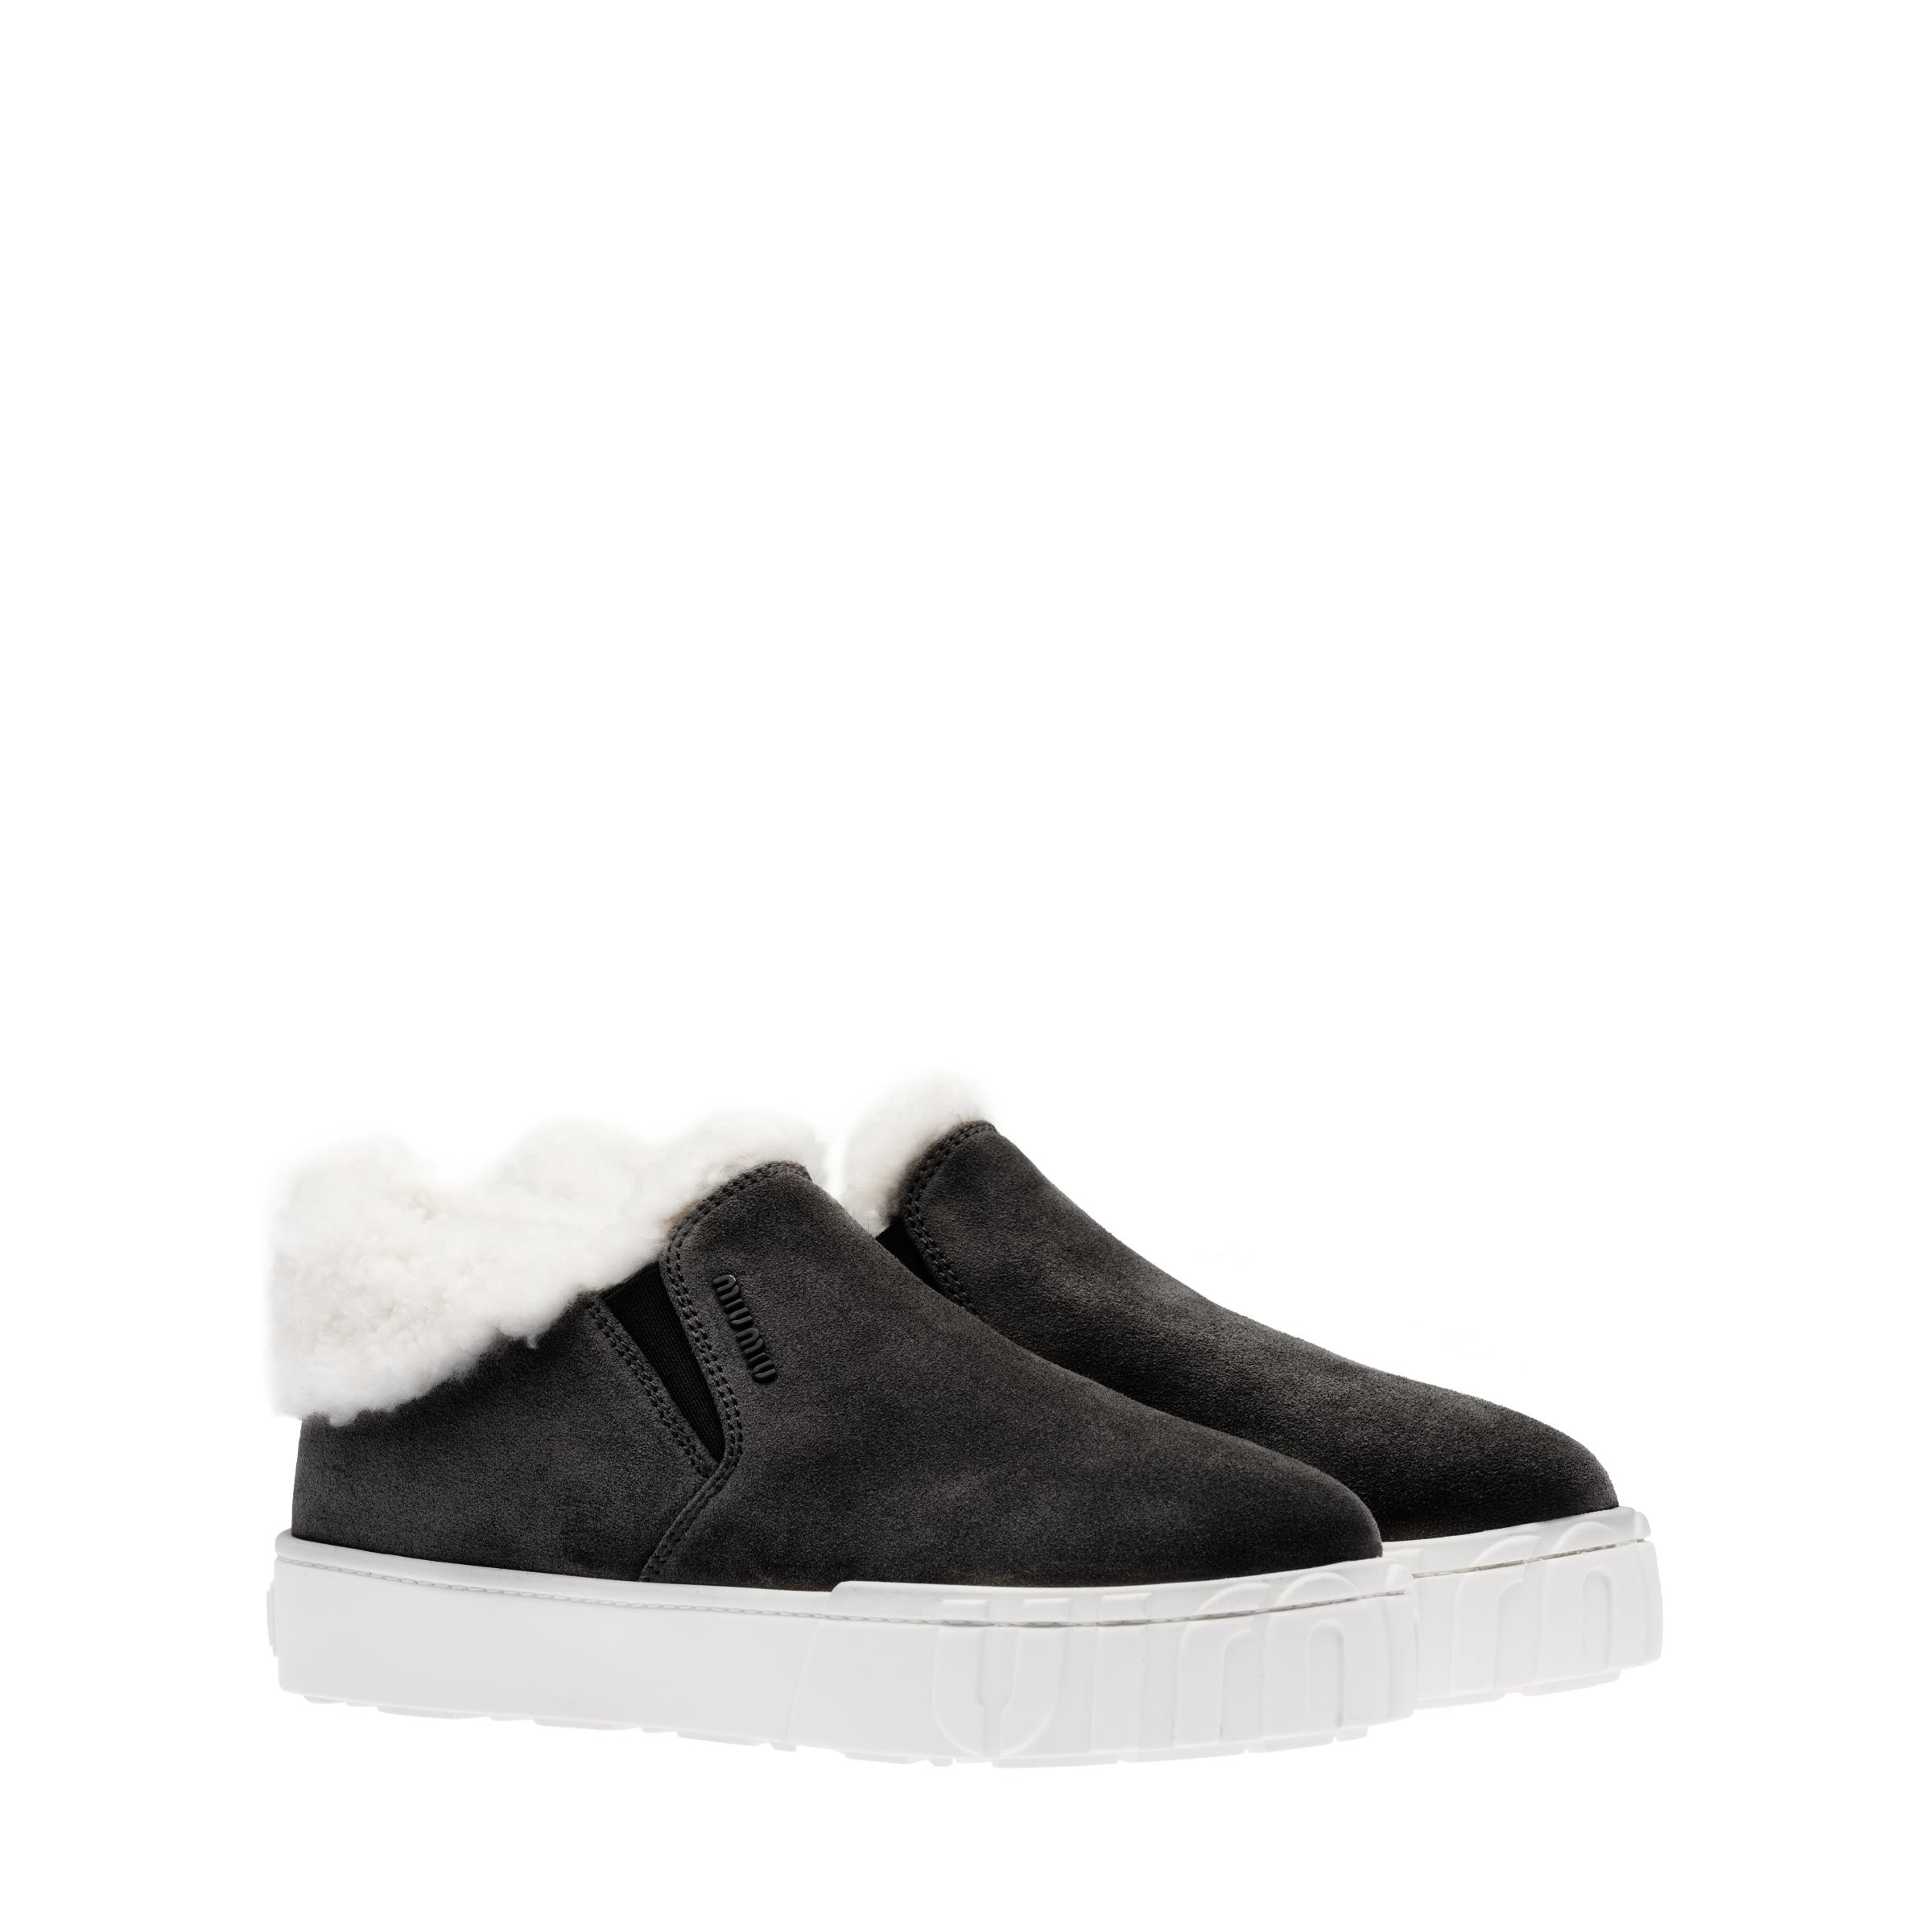 Suede Slip-on Ankle Boots Women Black/tan